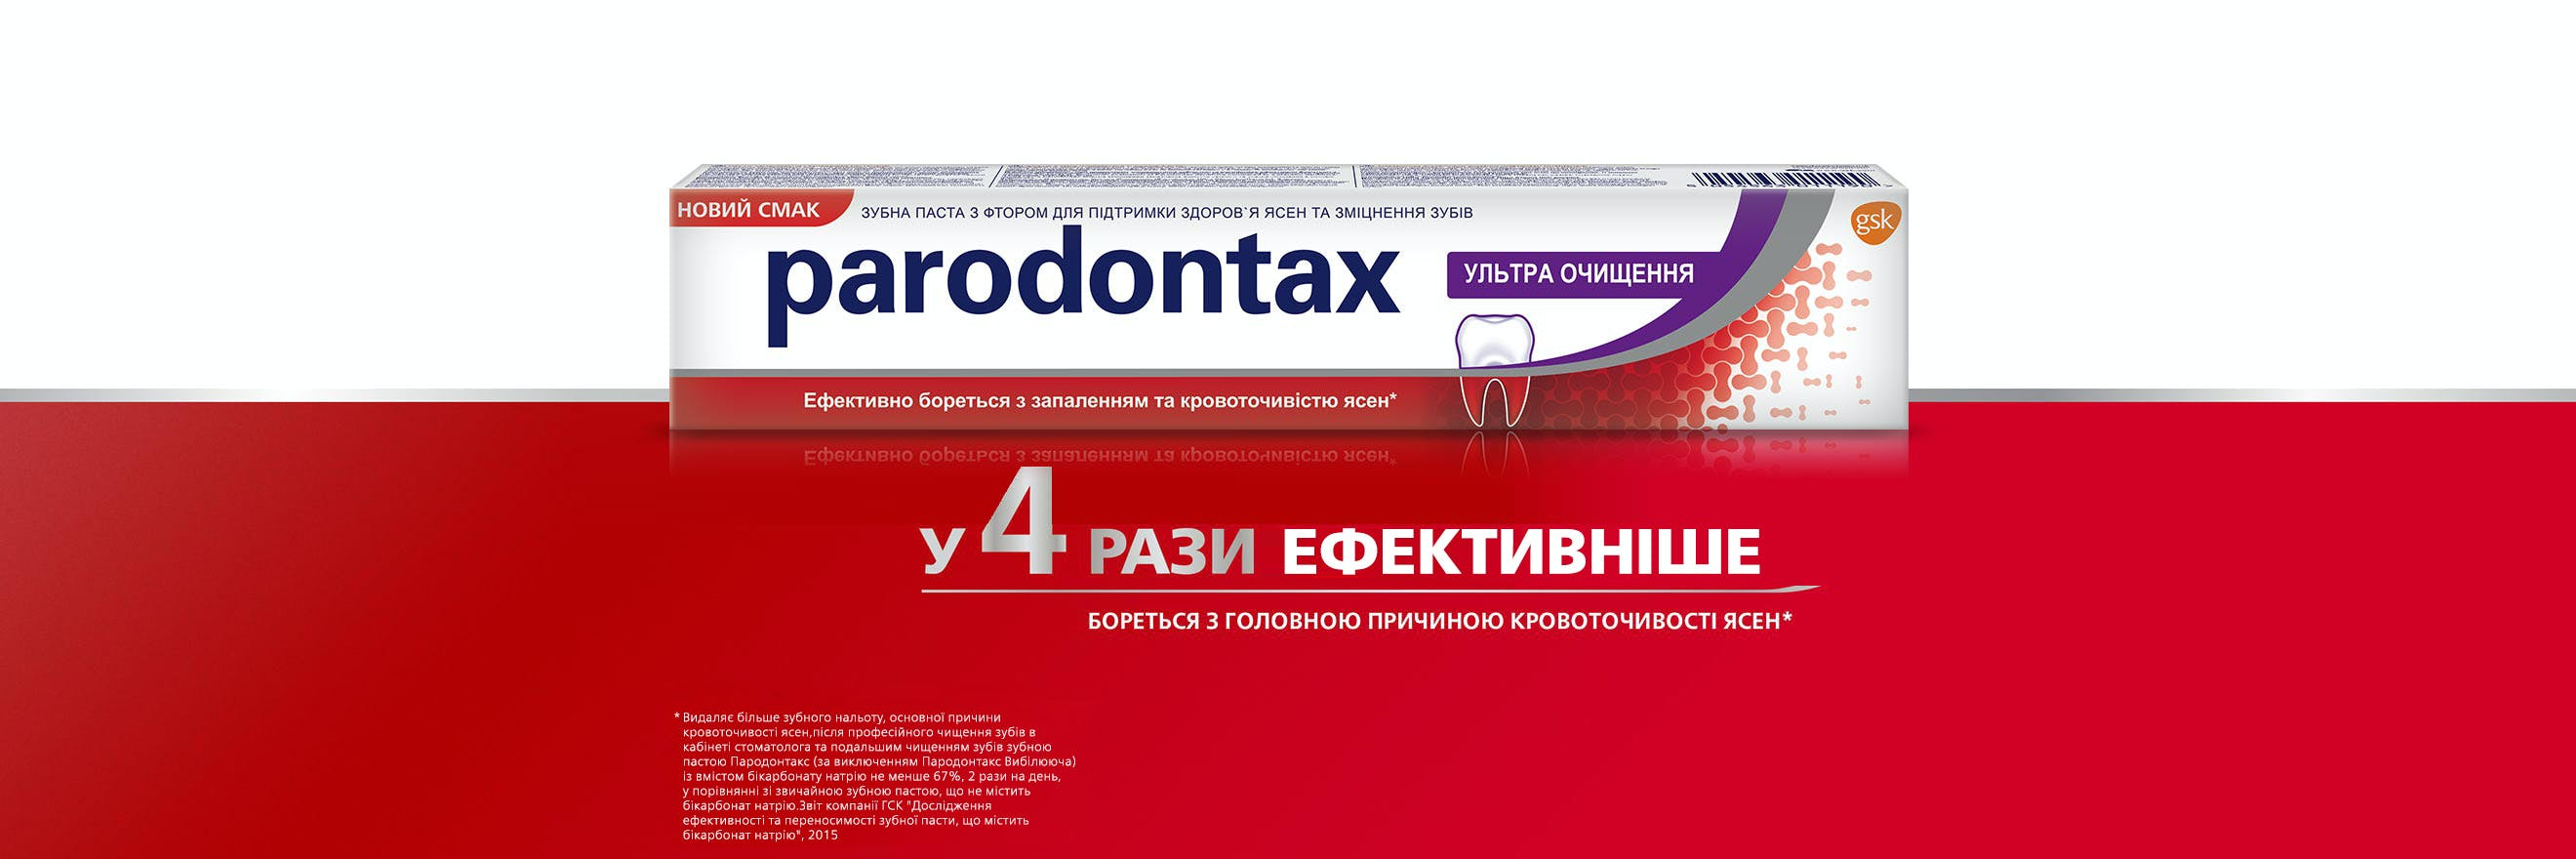 New parodontax Daily Ultra Clean toothpaste